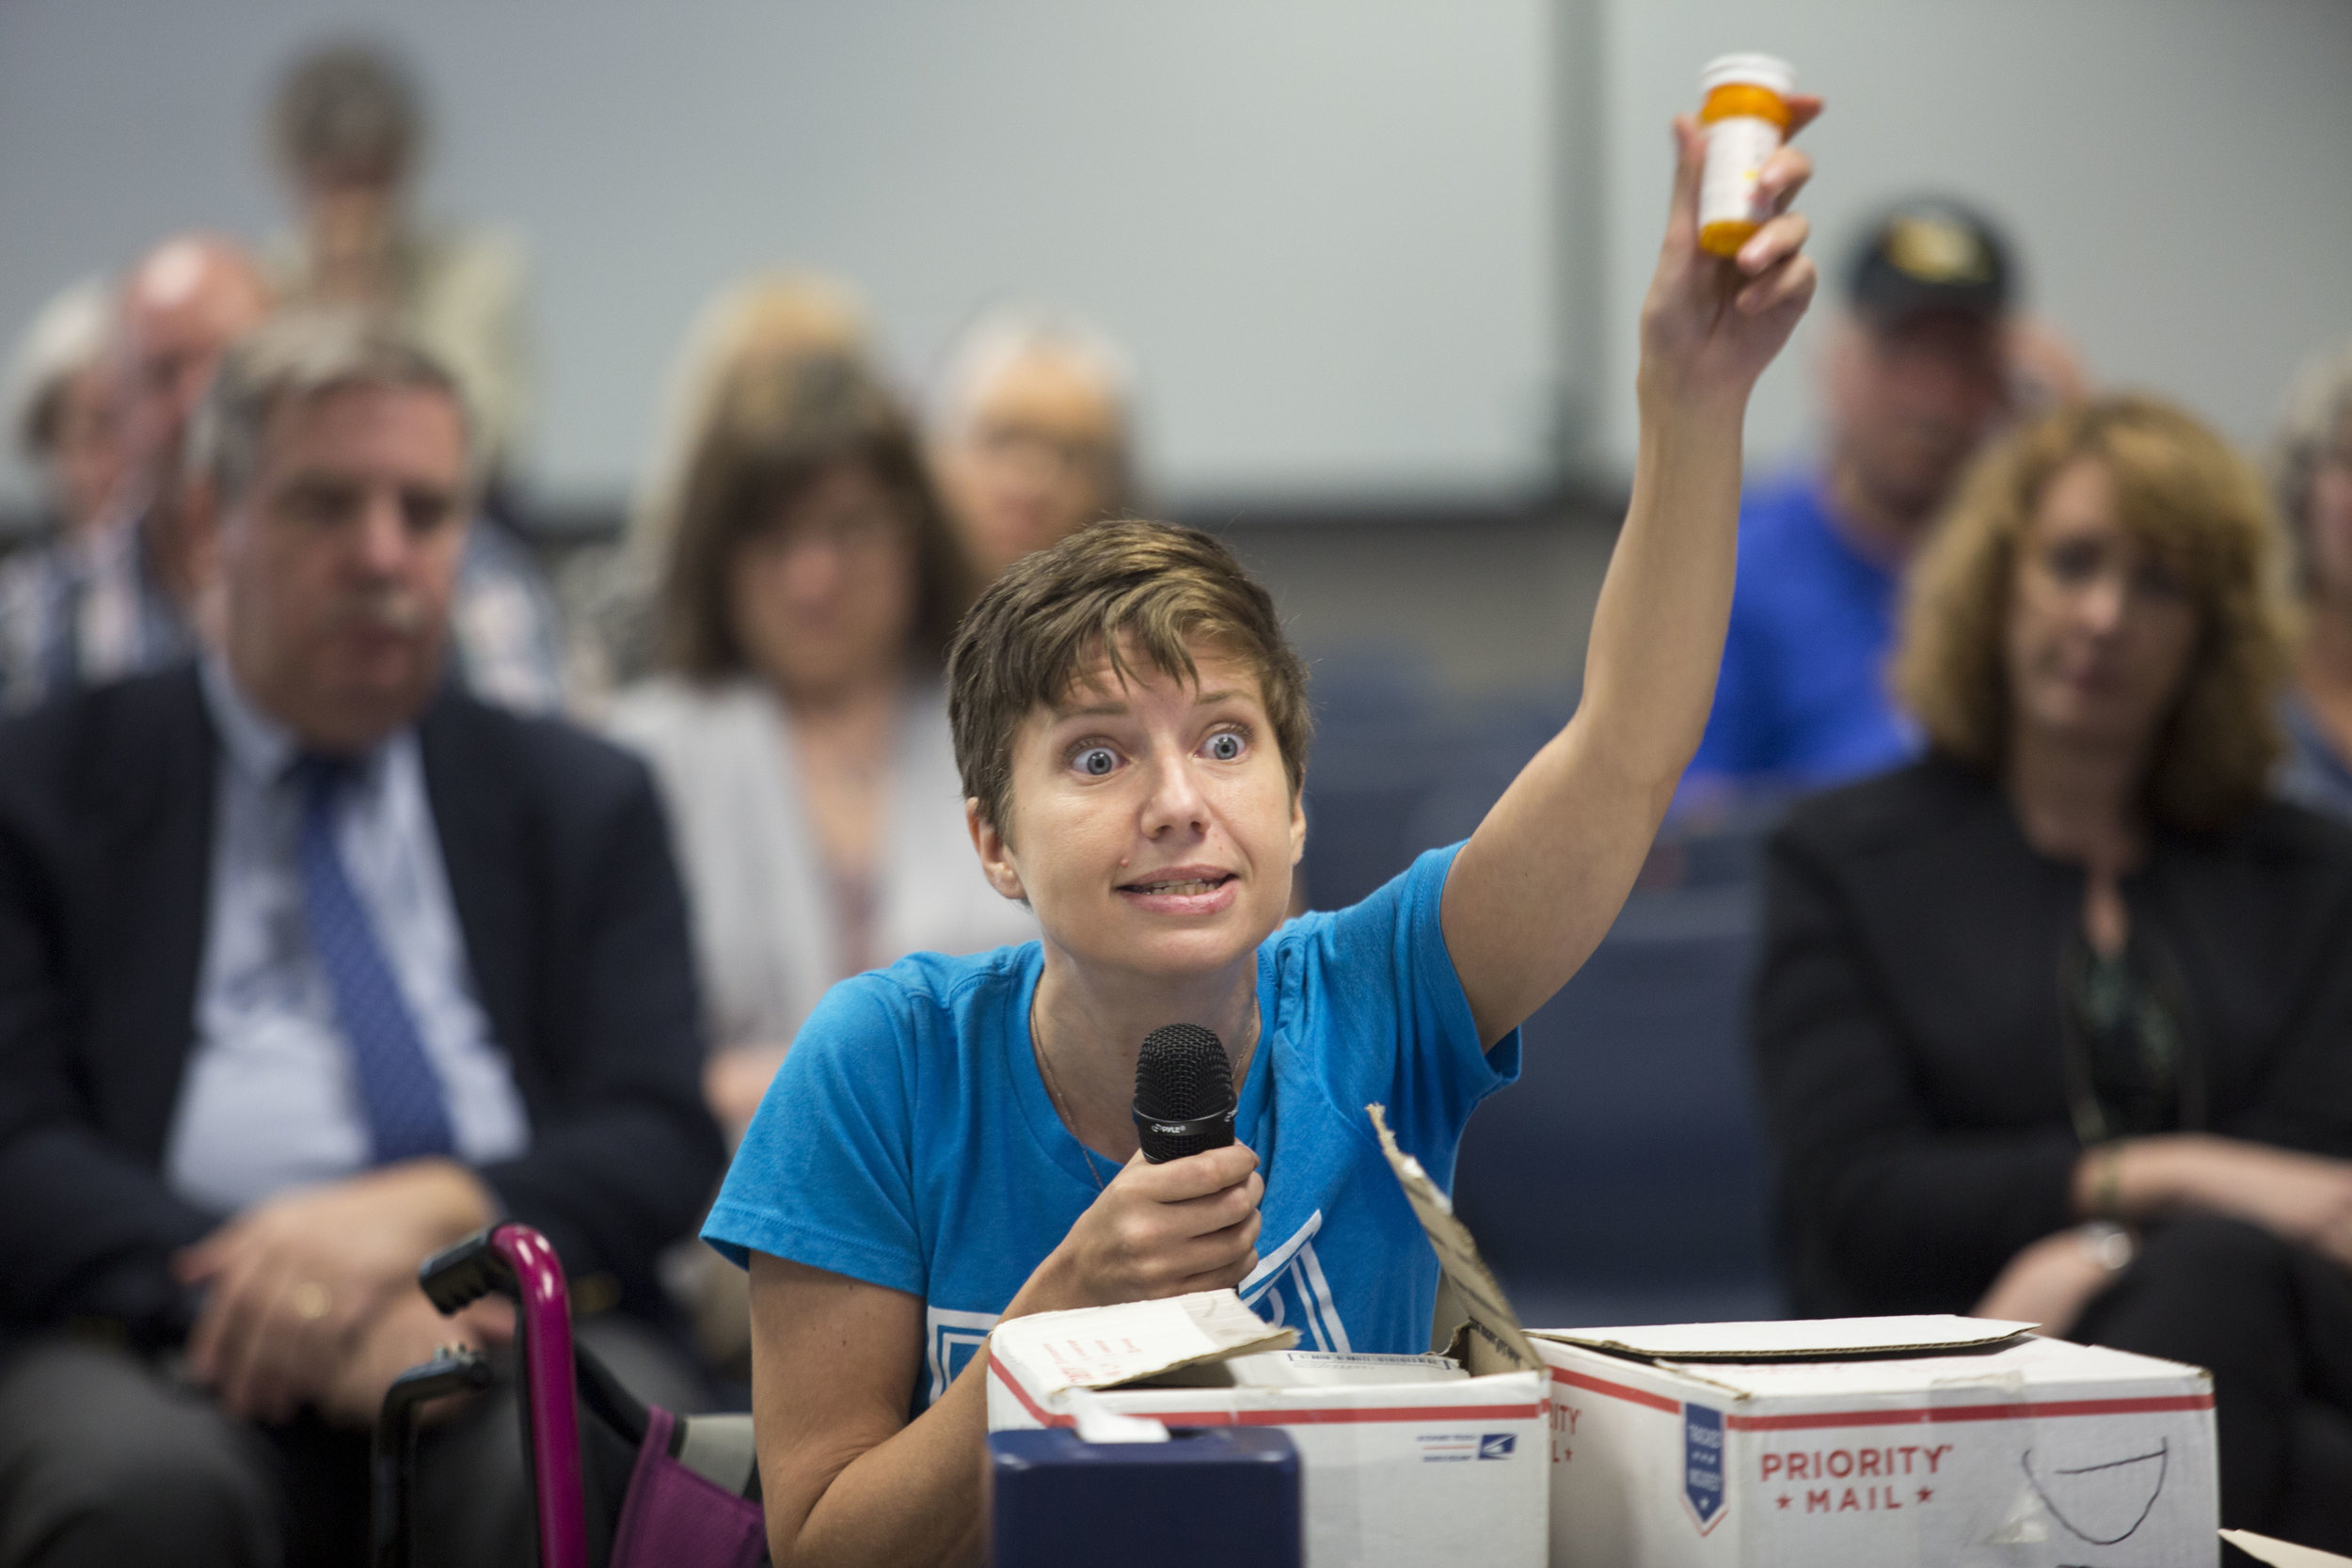 Amanda Siebe holds up her bottle of methadone as she speaks at a hearing to discuss the future availability of opioids under Oregon Medicaid rules in Wilsonville, Oregon August 9, 2018.